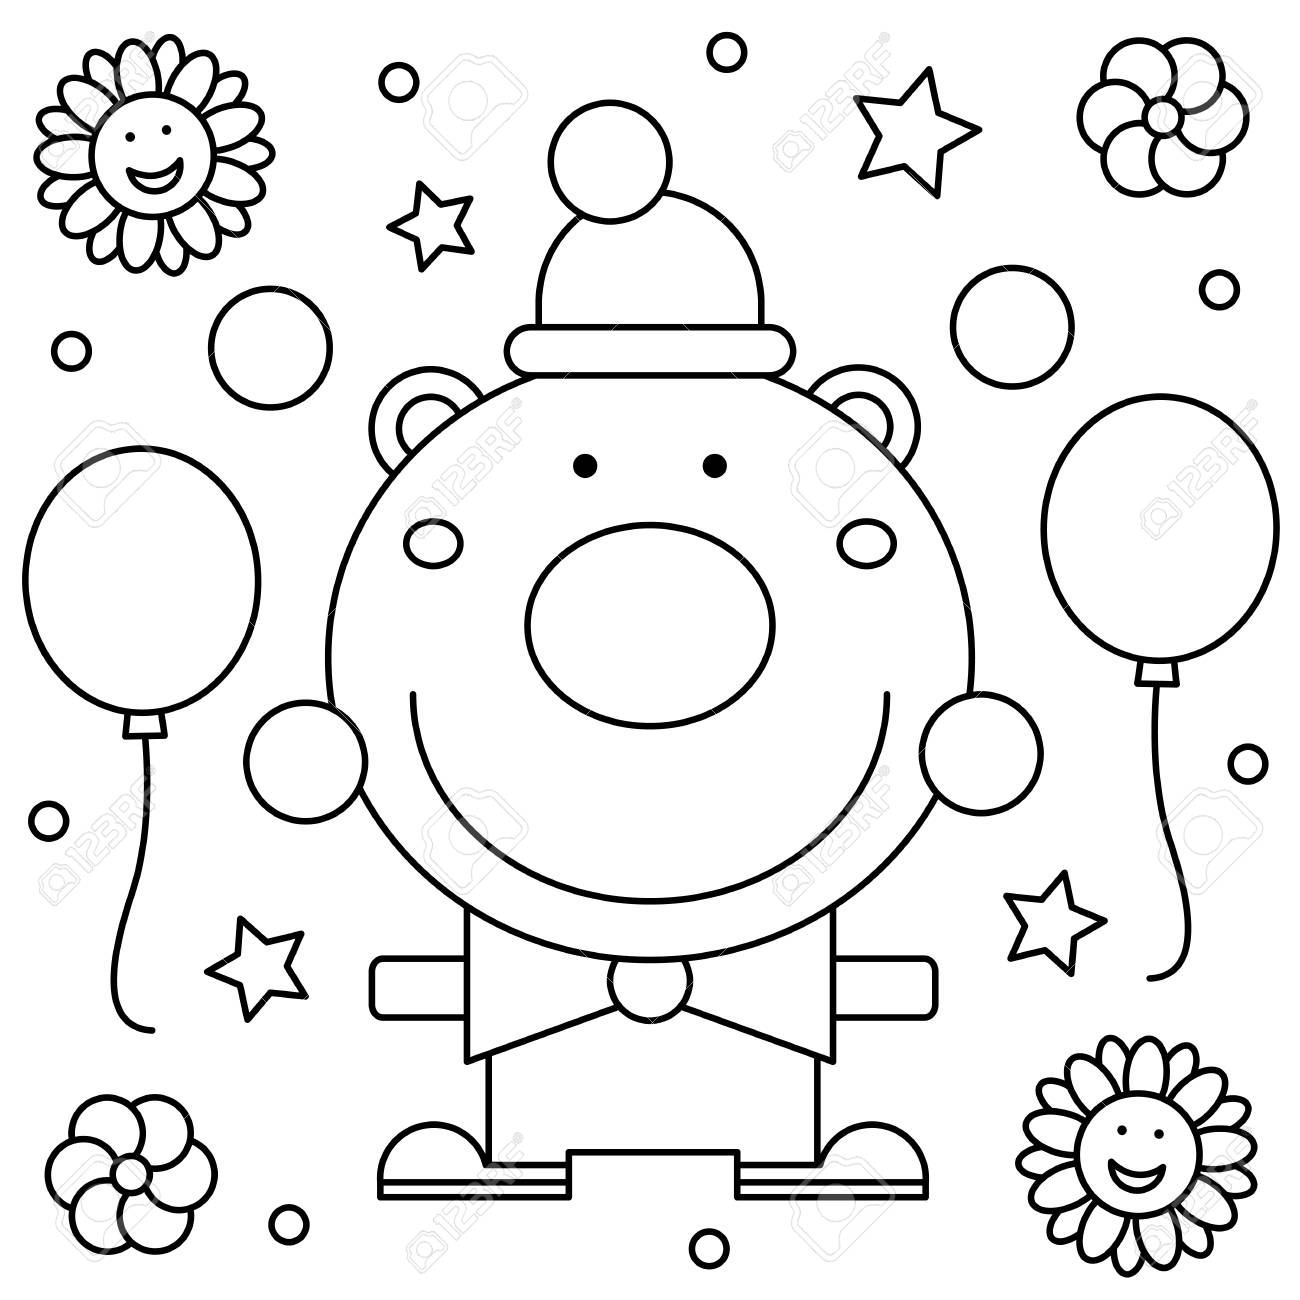 Coloring Page. Black And White Vector Illustration Of A Clown ...